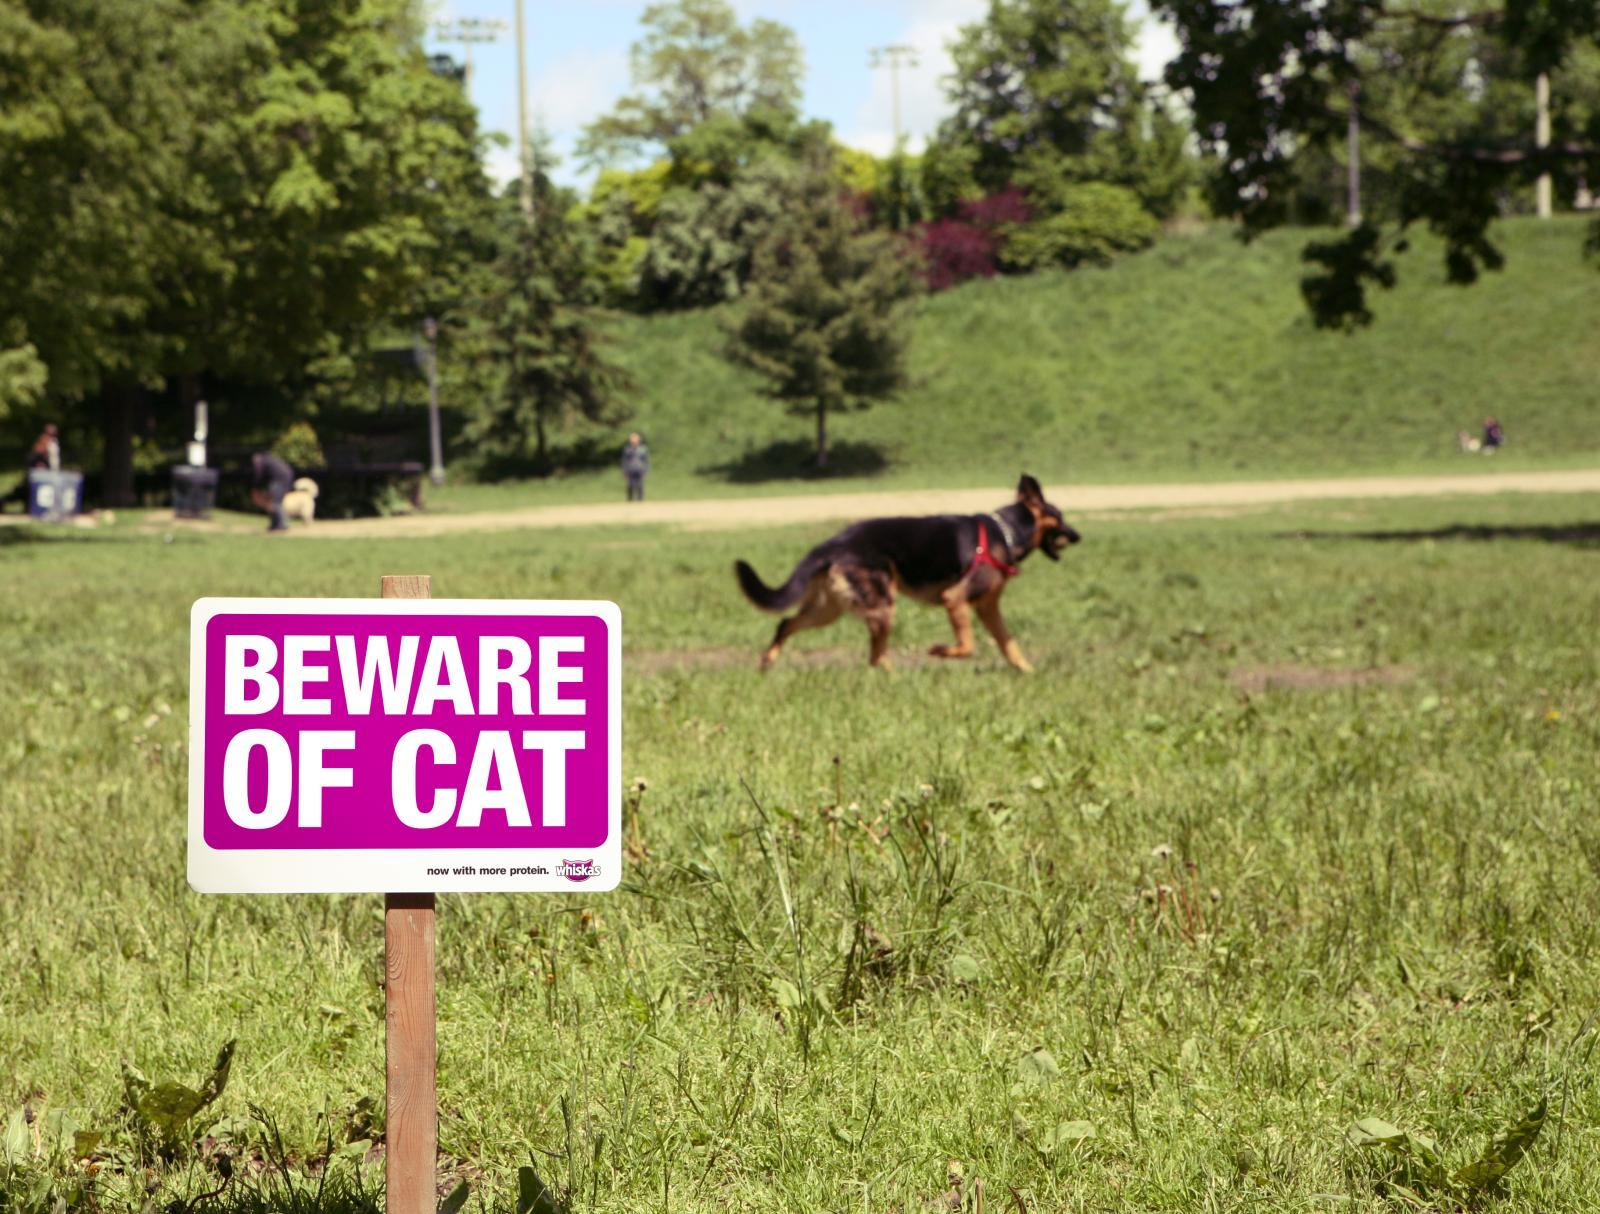 Whiskas Outdoor Ad -  Beware of cat sign